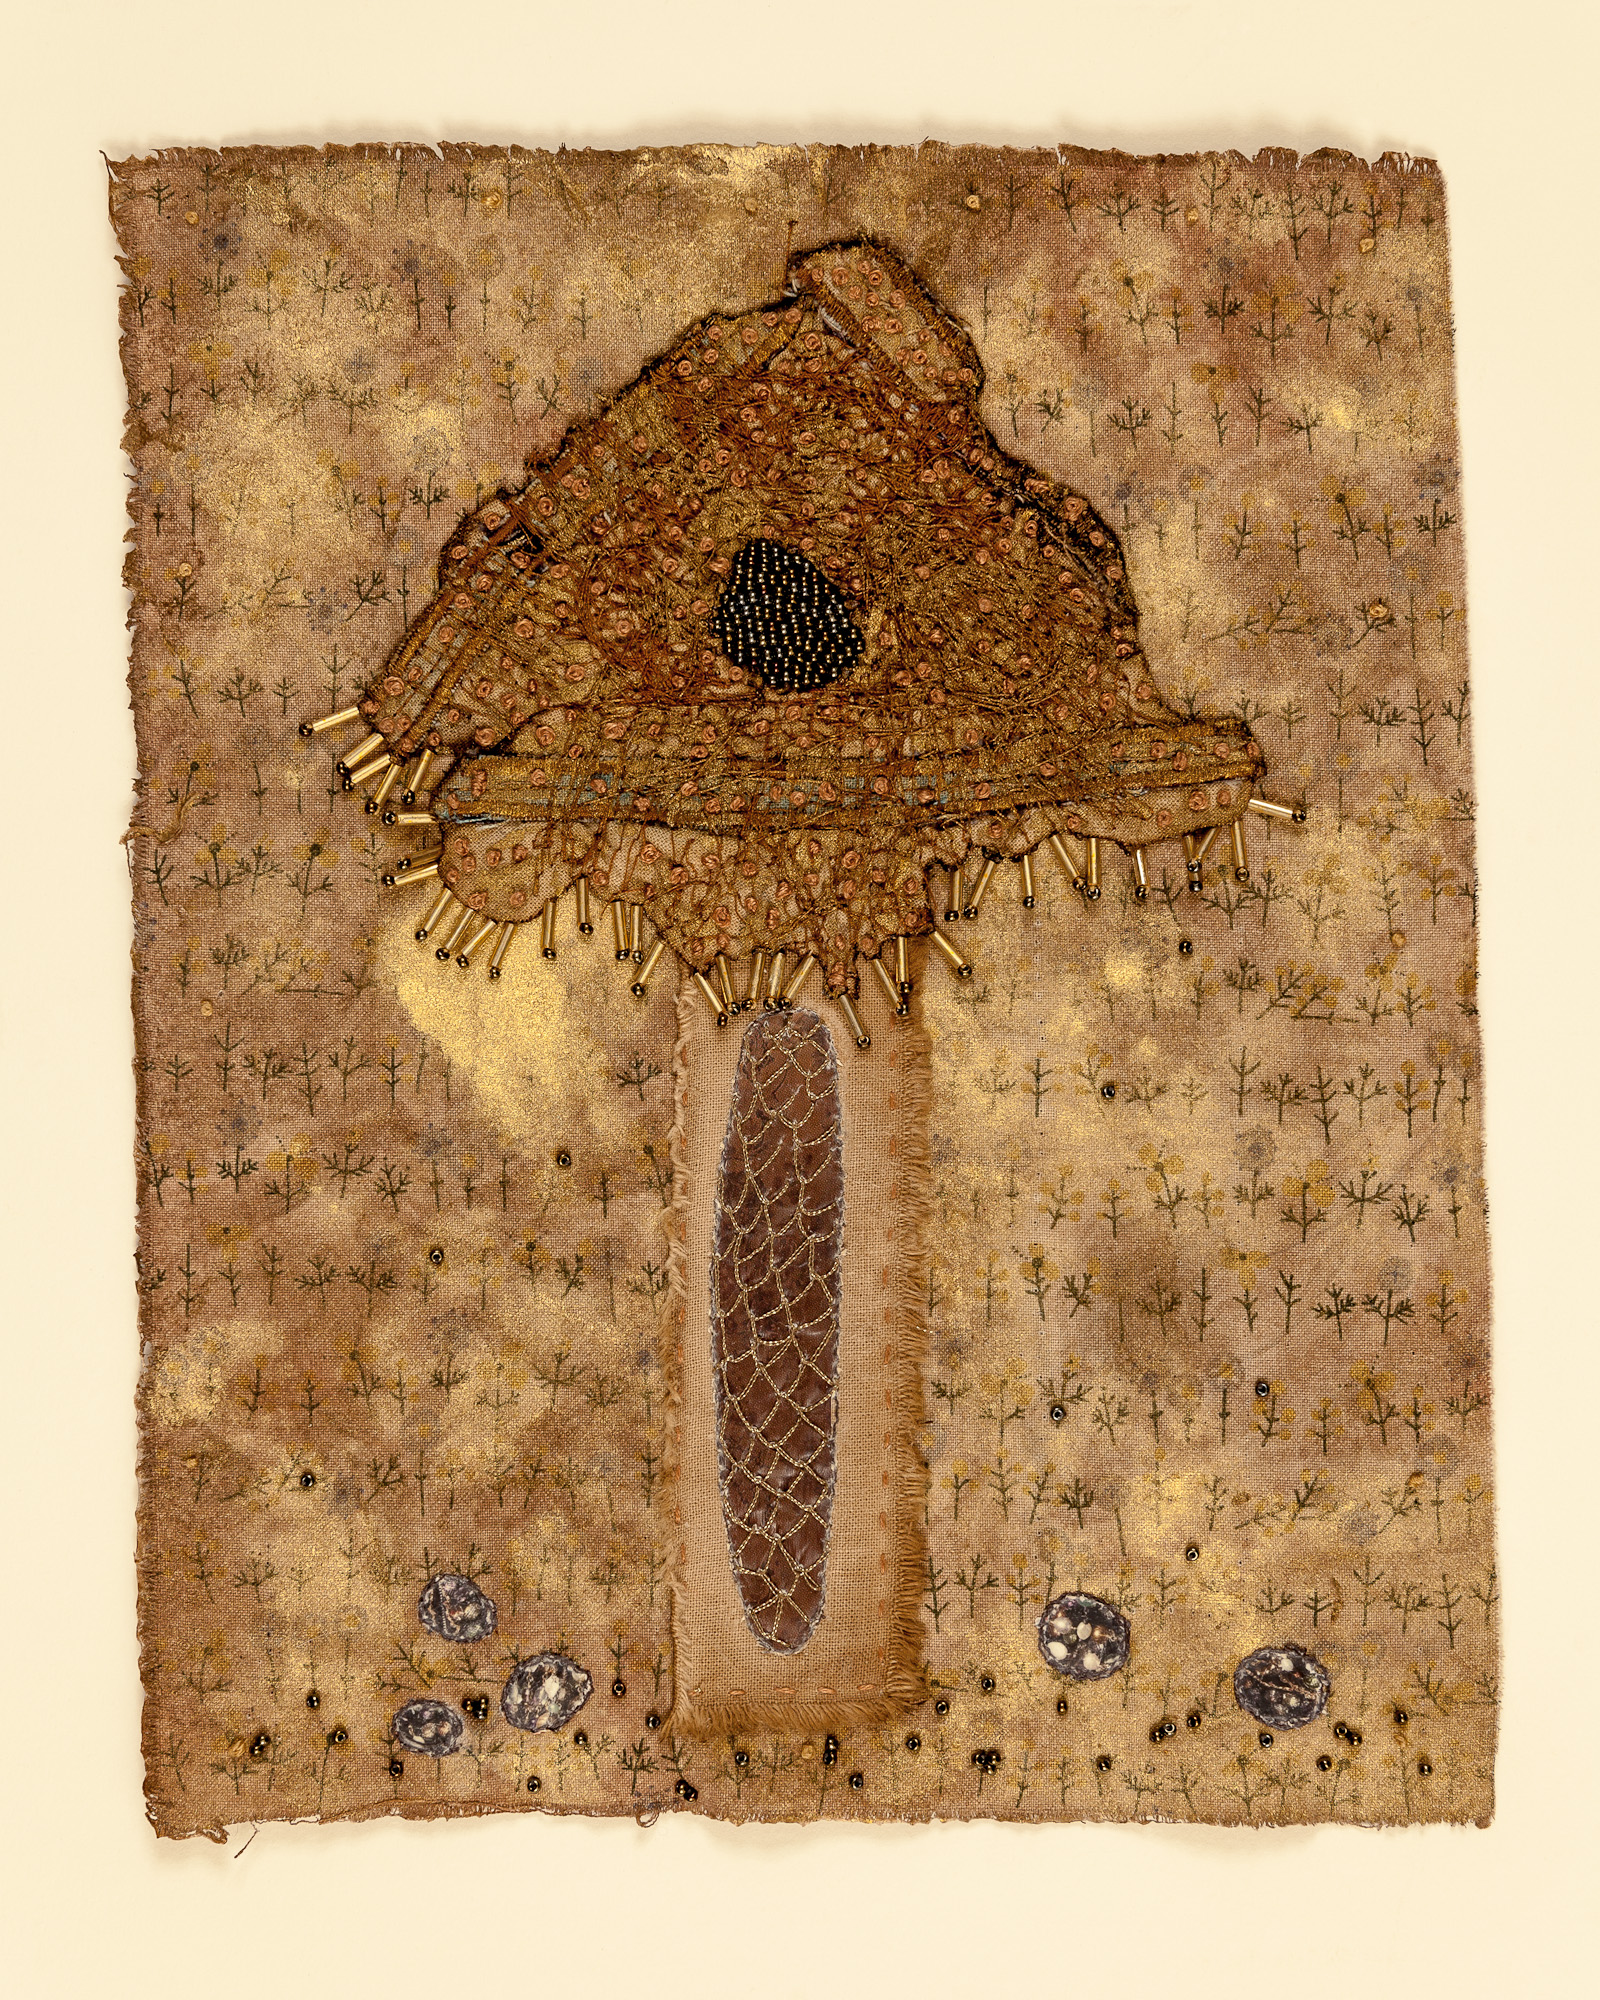 Chilul Hashem (The Garden of Good and Evil), 2012